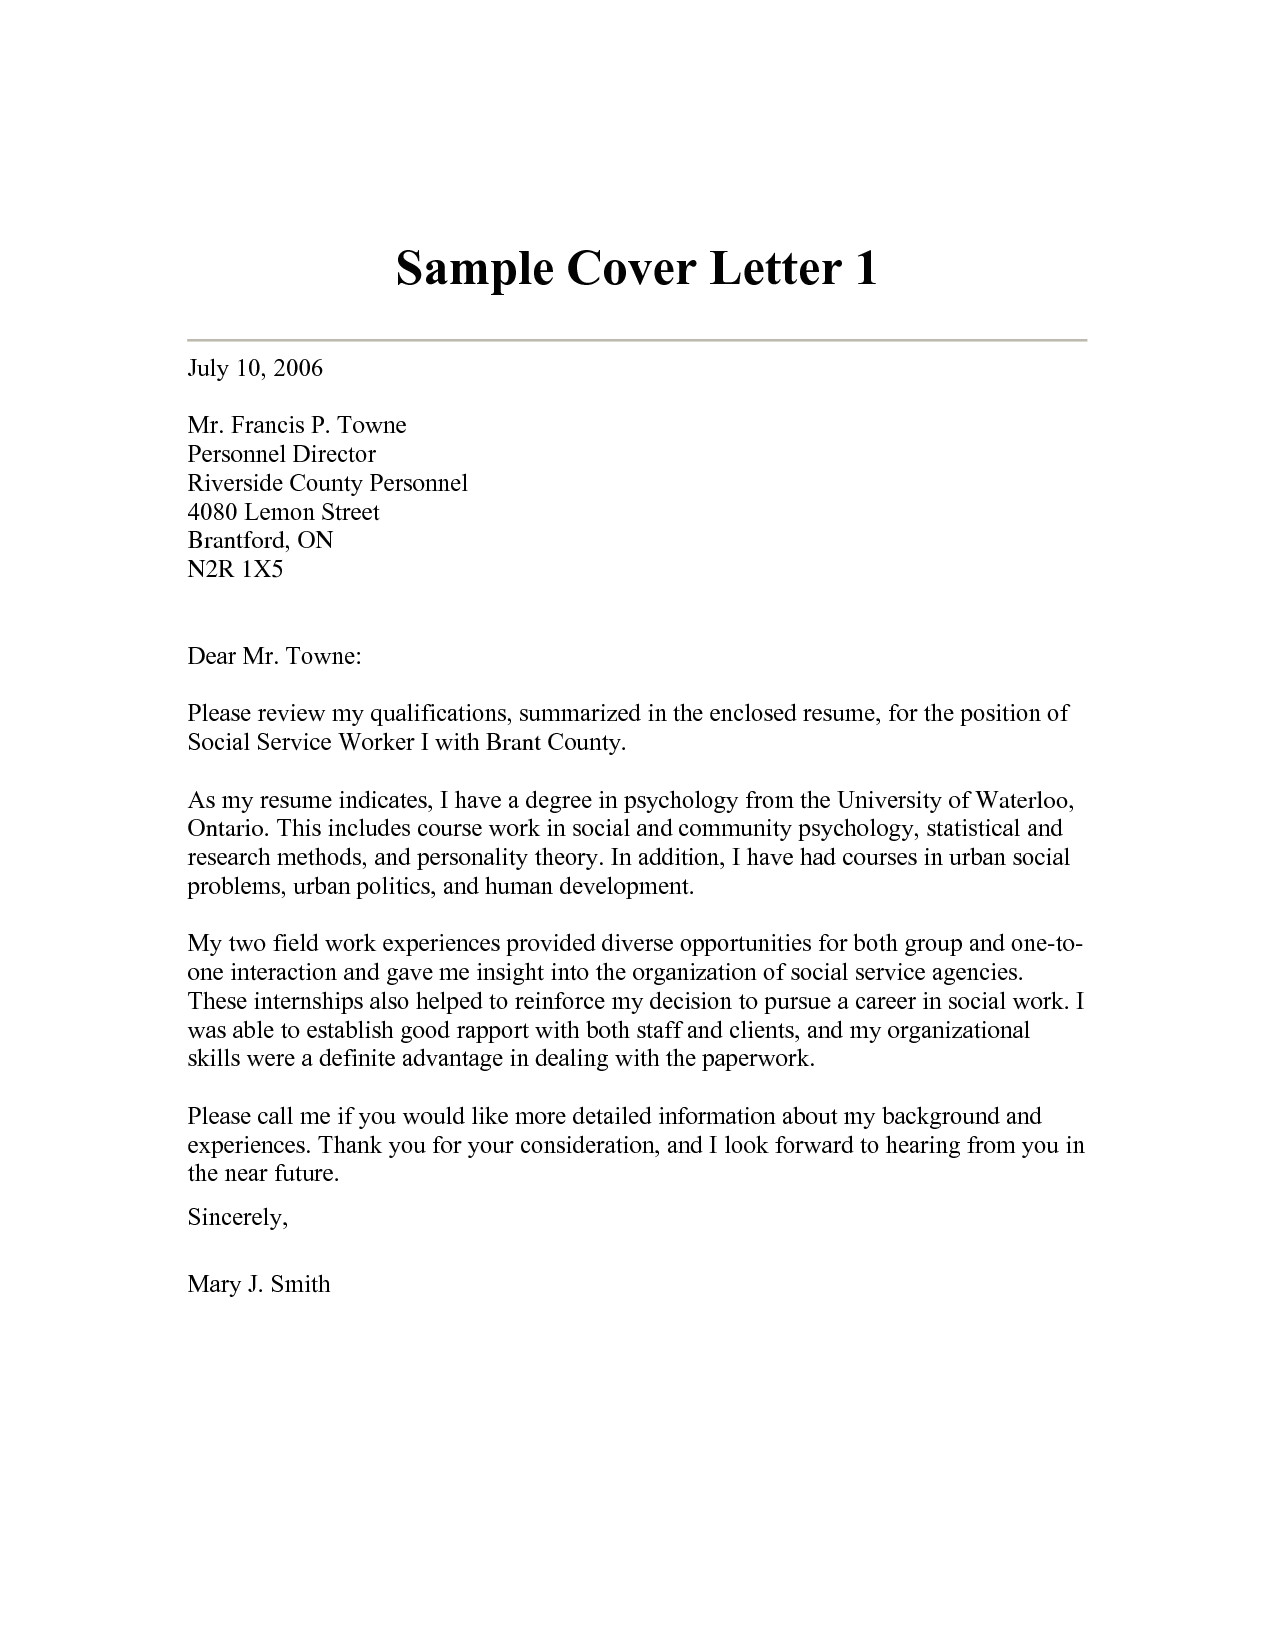 sample cover letter for director of social services